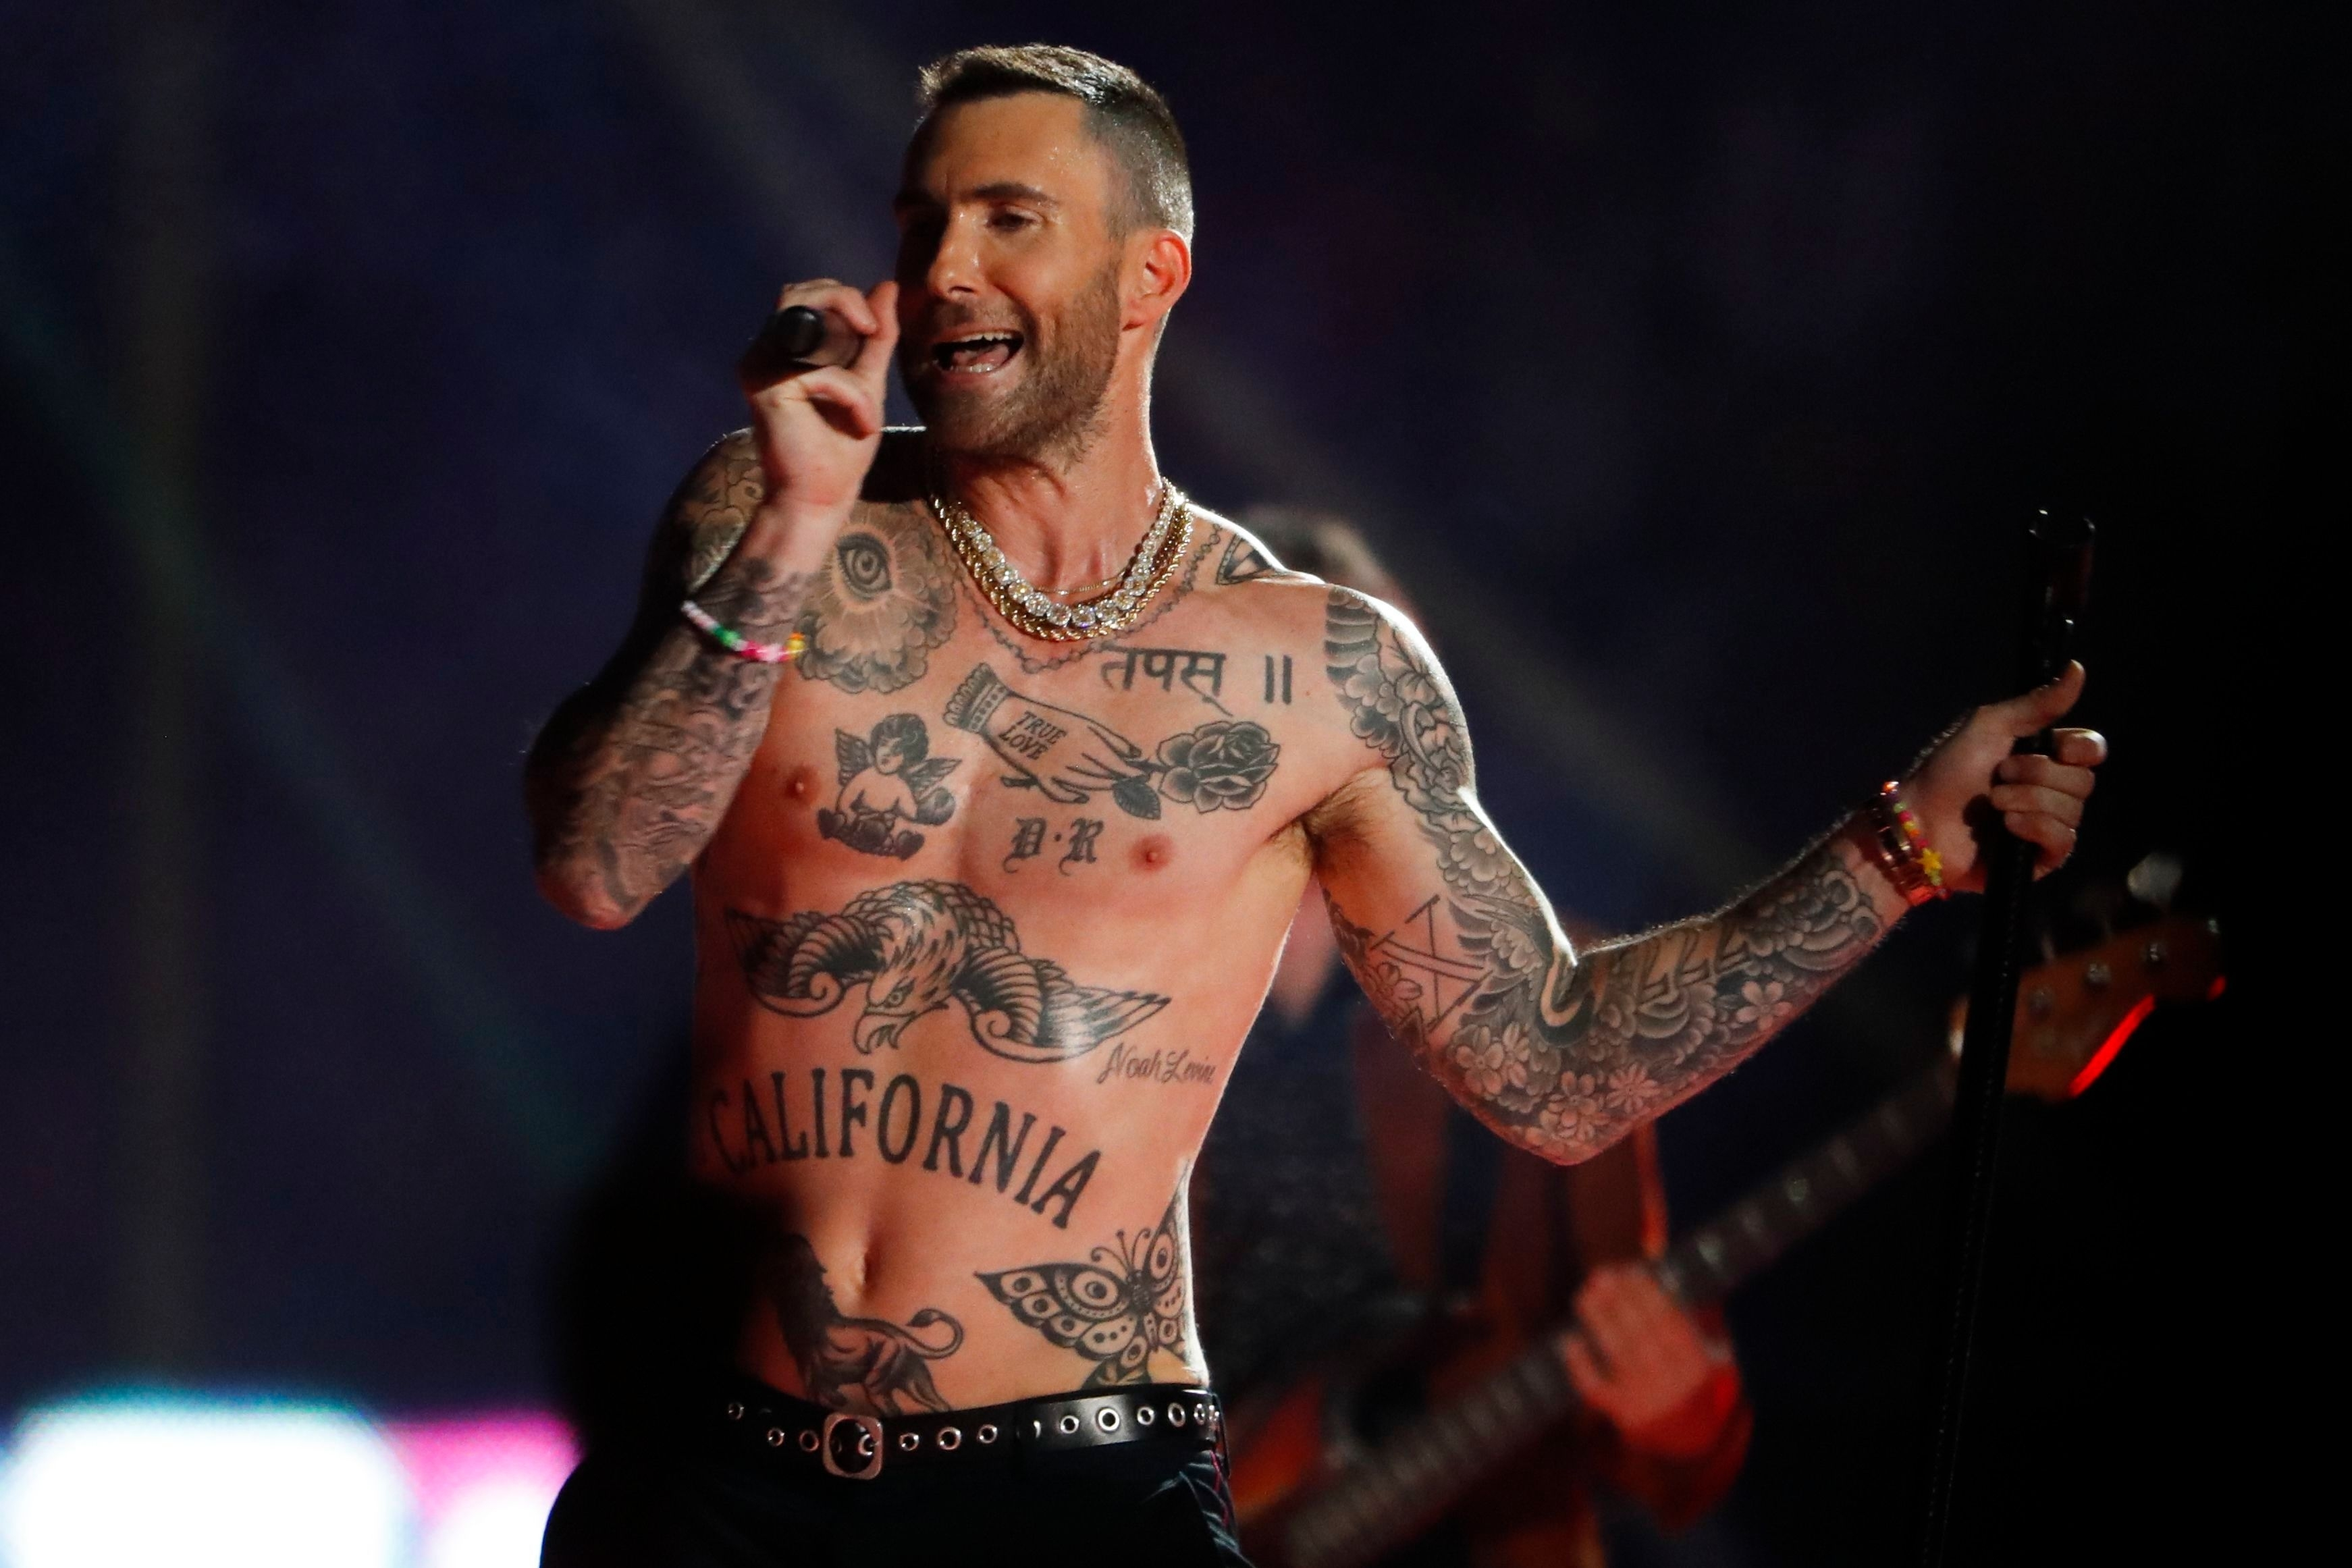 Maroon 5 Super Bowl Halftime Show: 5 Important Questions intended for Maroon Five Super Bowl